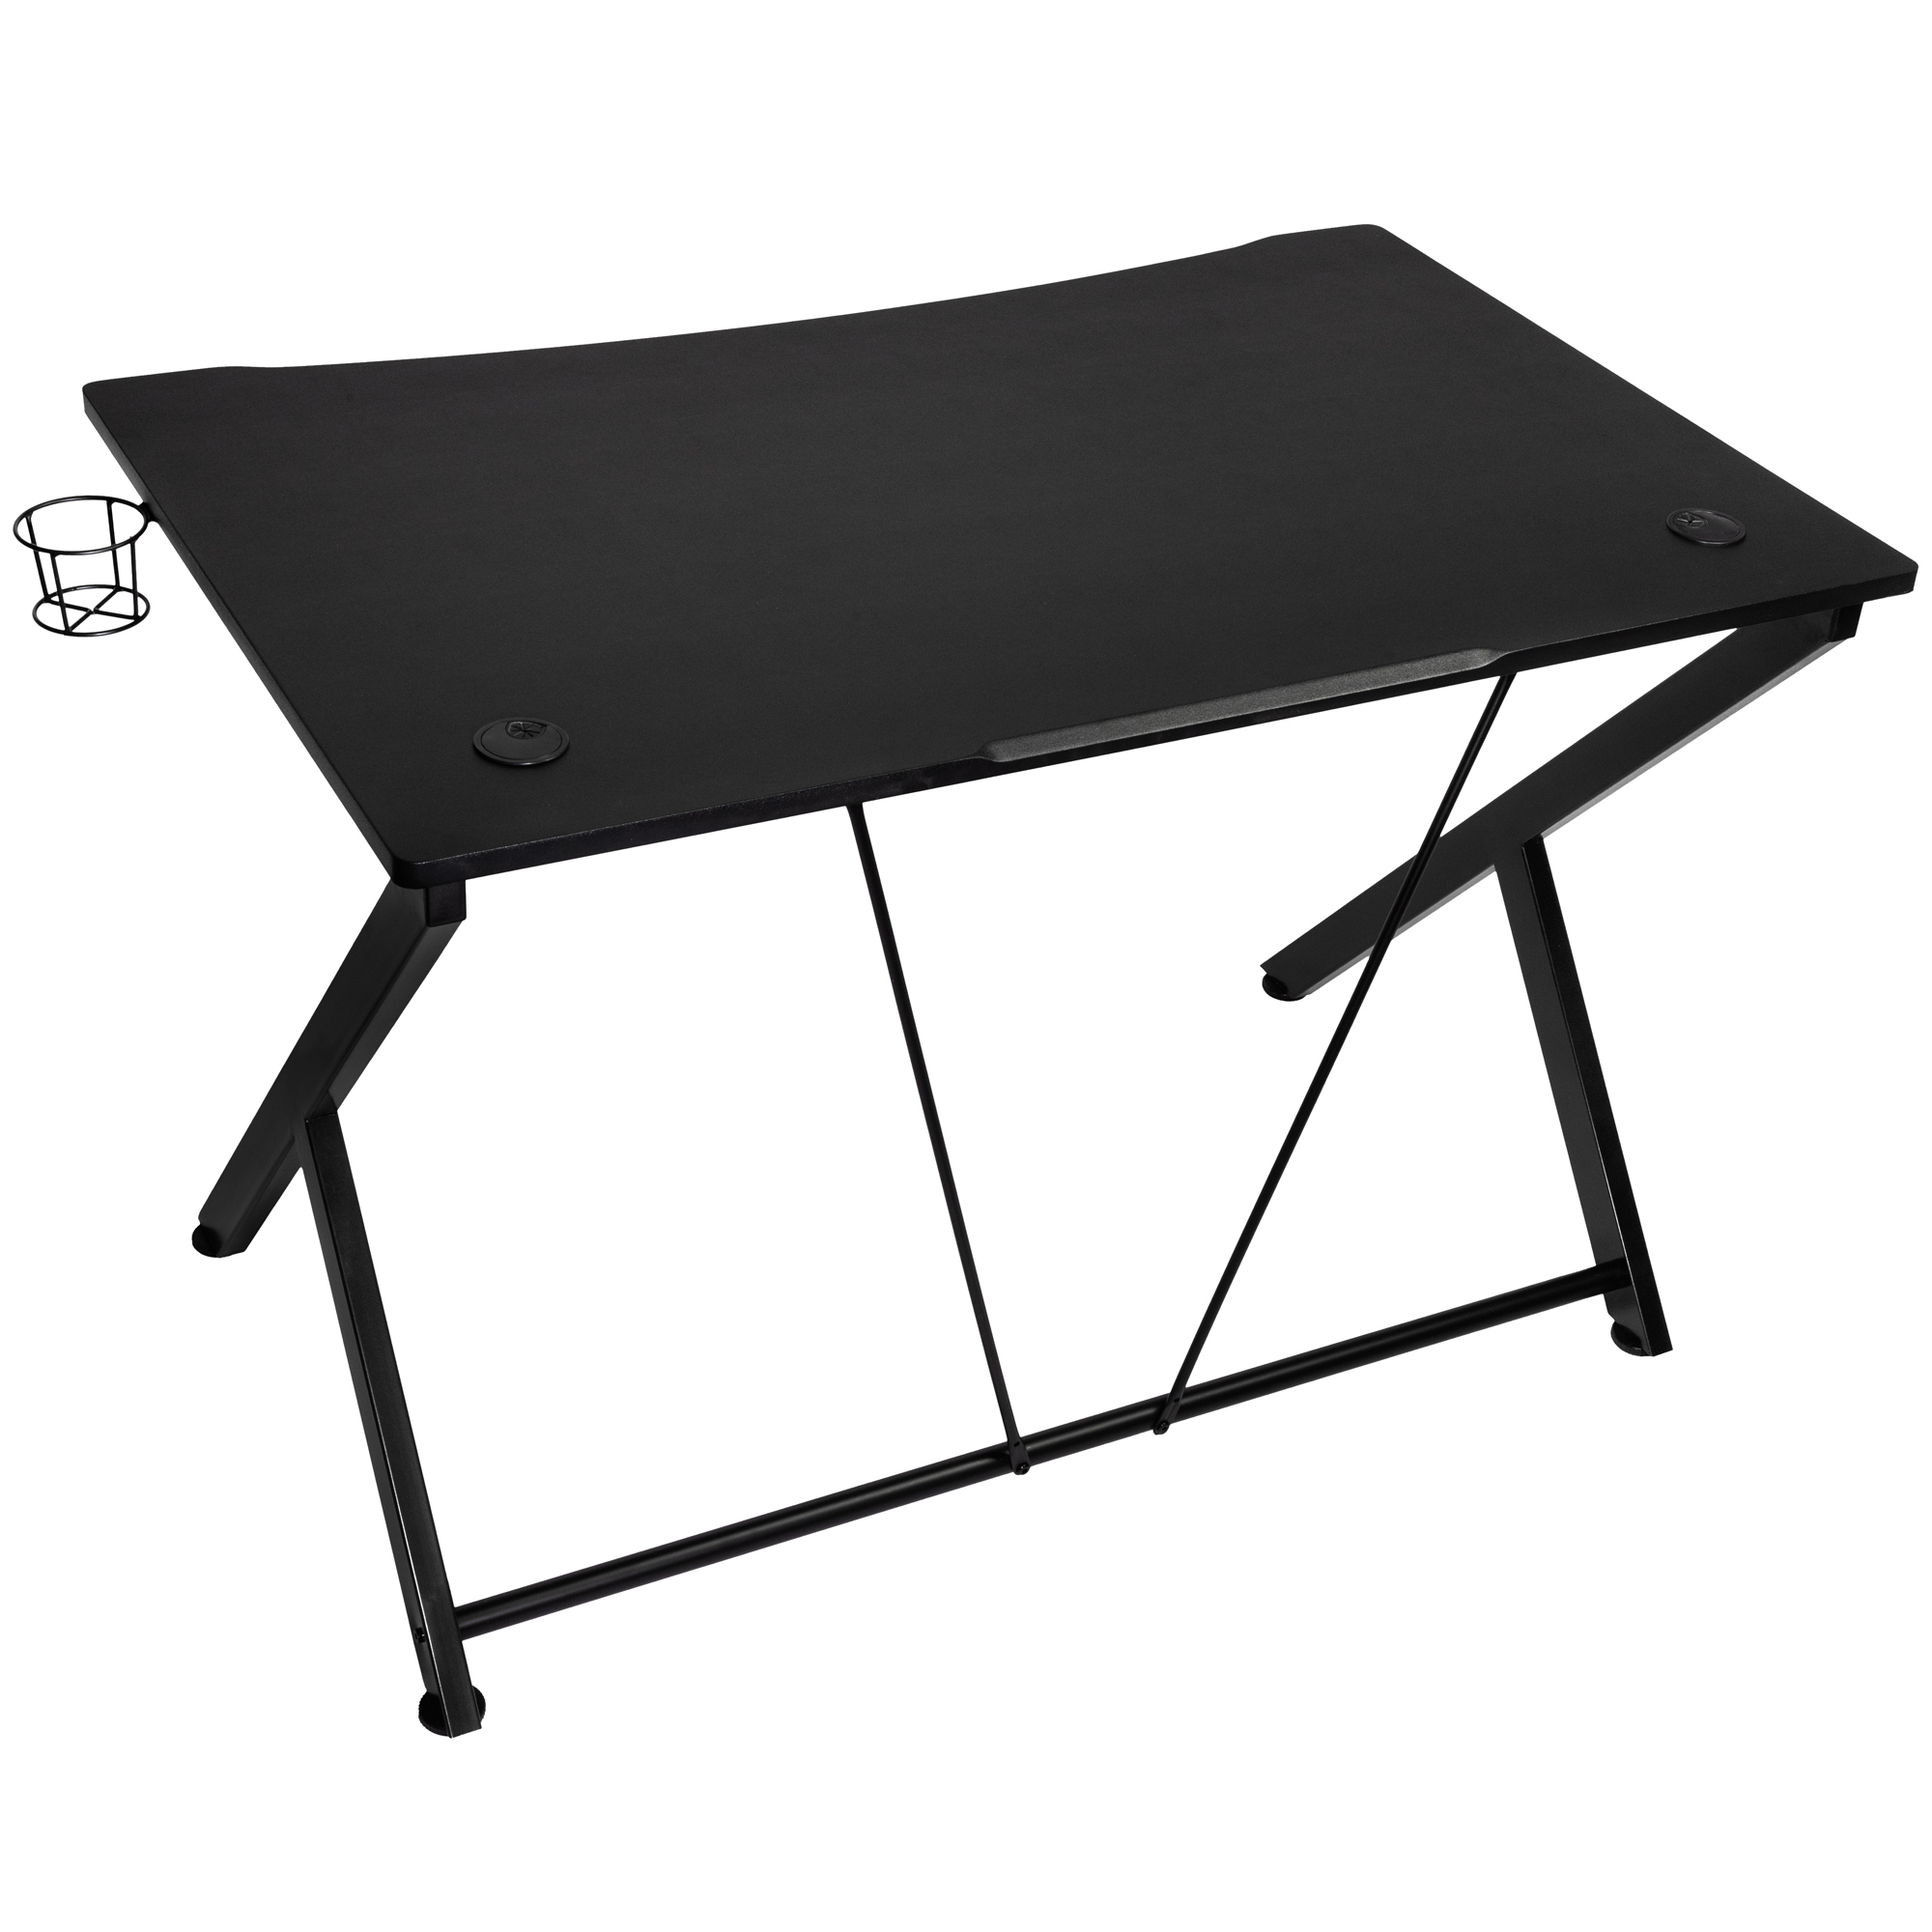 Nitro Concepts Gaming Desk D12 - Black